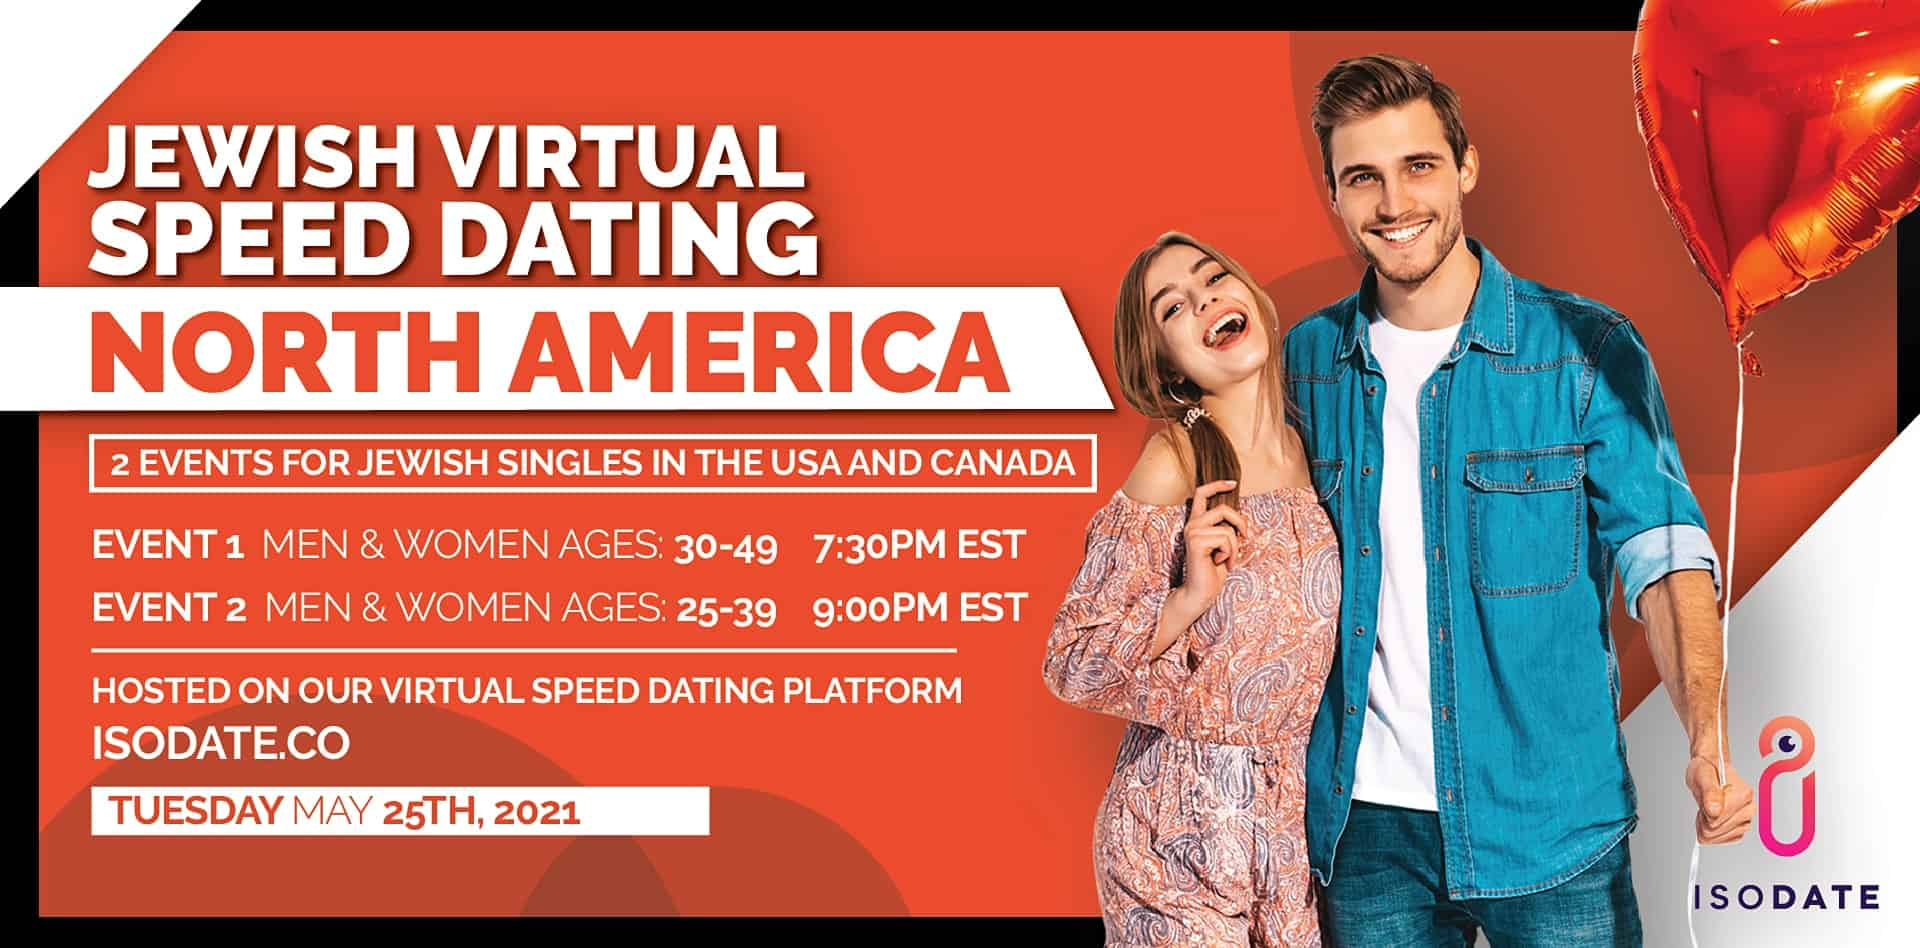 Isodate's North American Jewish Virtual Speed Dating